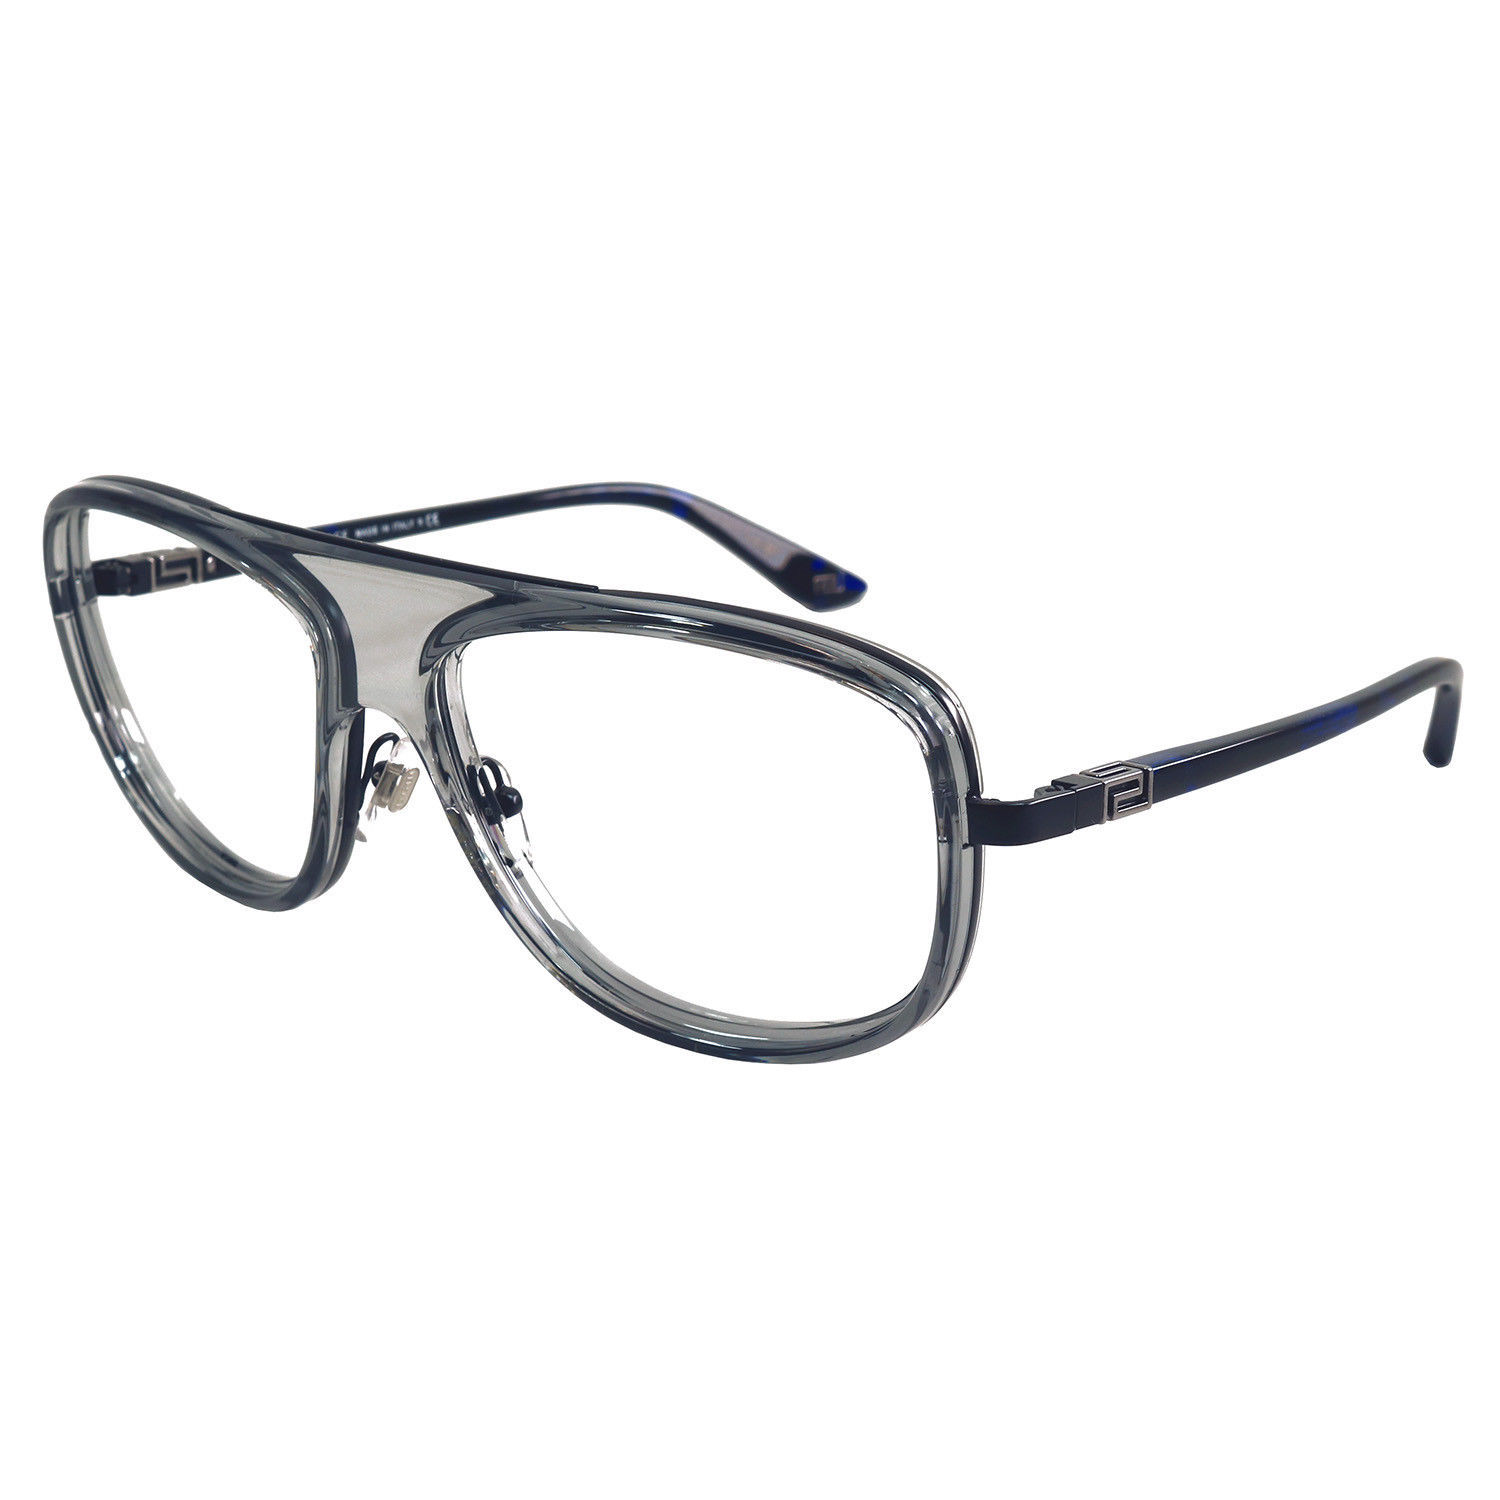 85a62c9e2ba0c Versace 59-15-135 Translucent Grey and Dark and 10 similar items